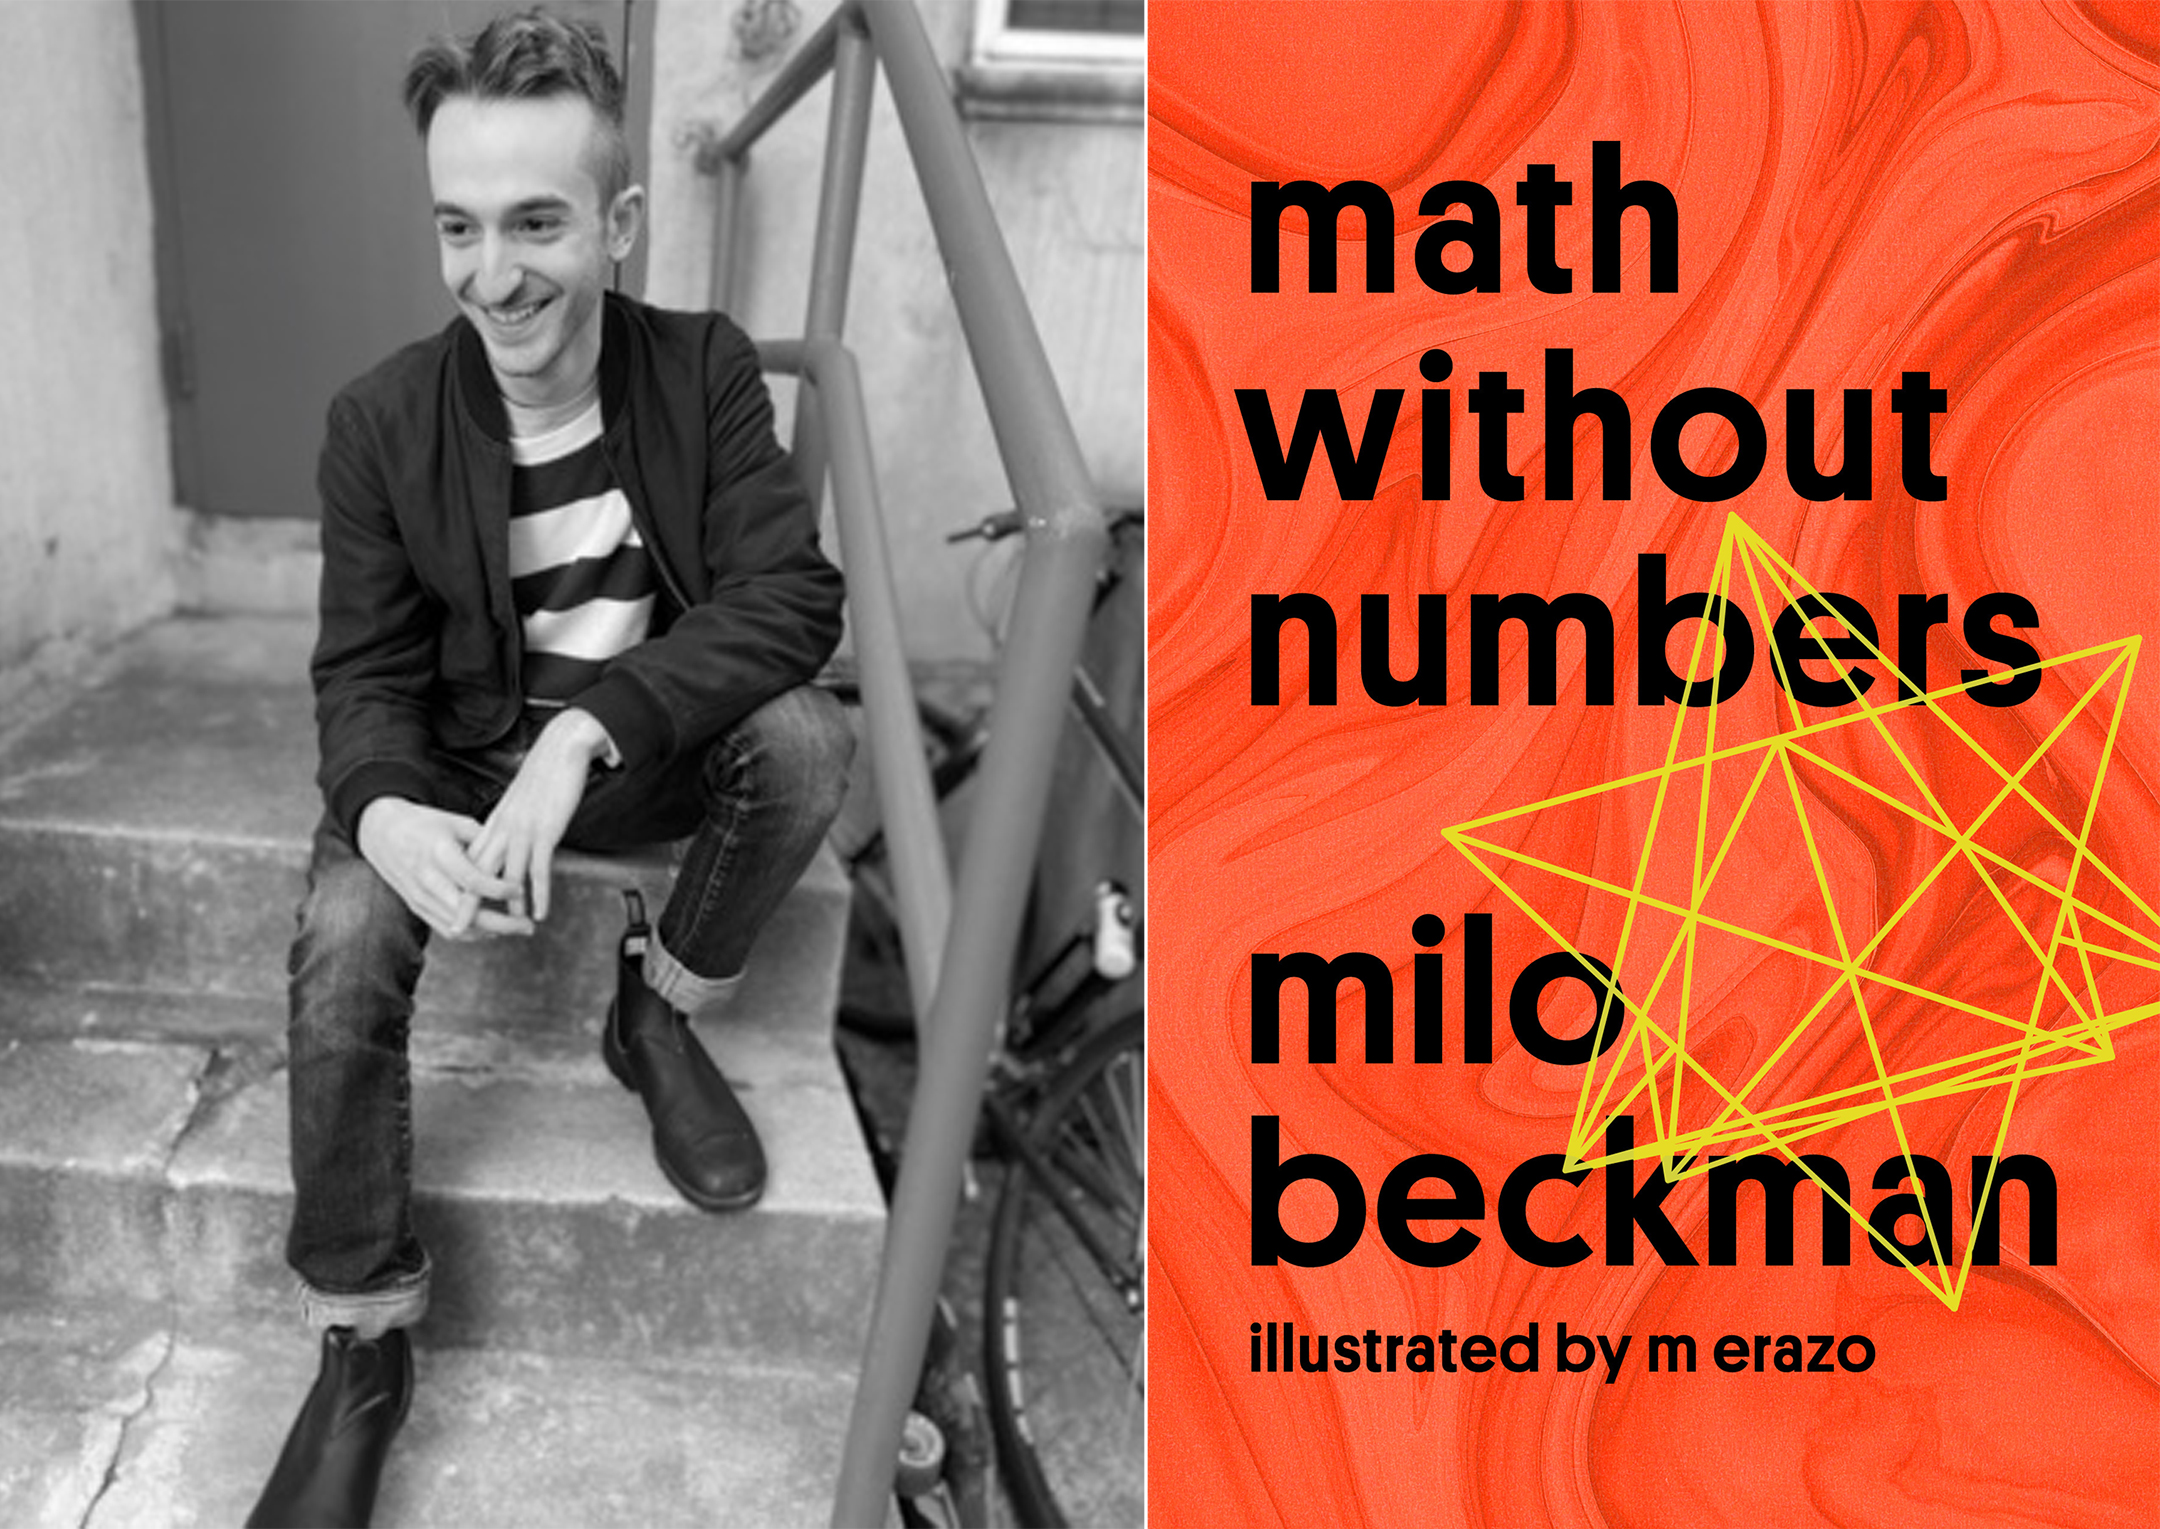 Photo of author Milo Beckman on the left, and the cover of the book Math Without Numbers on the right